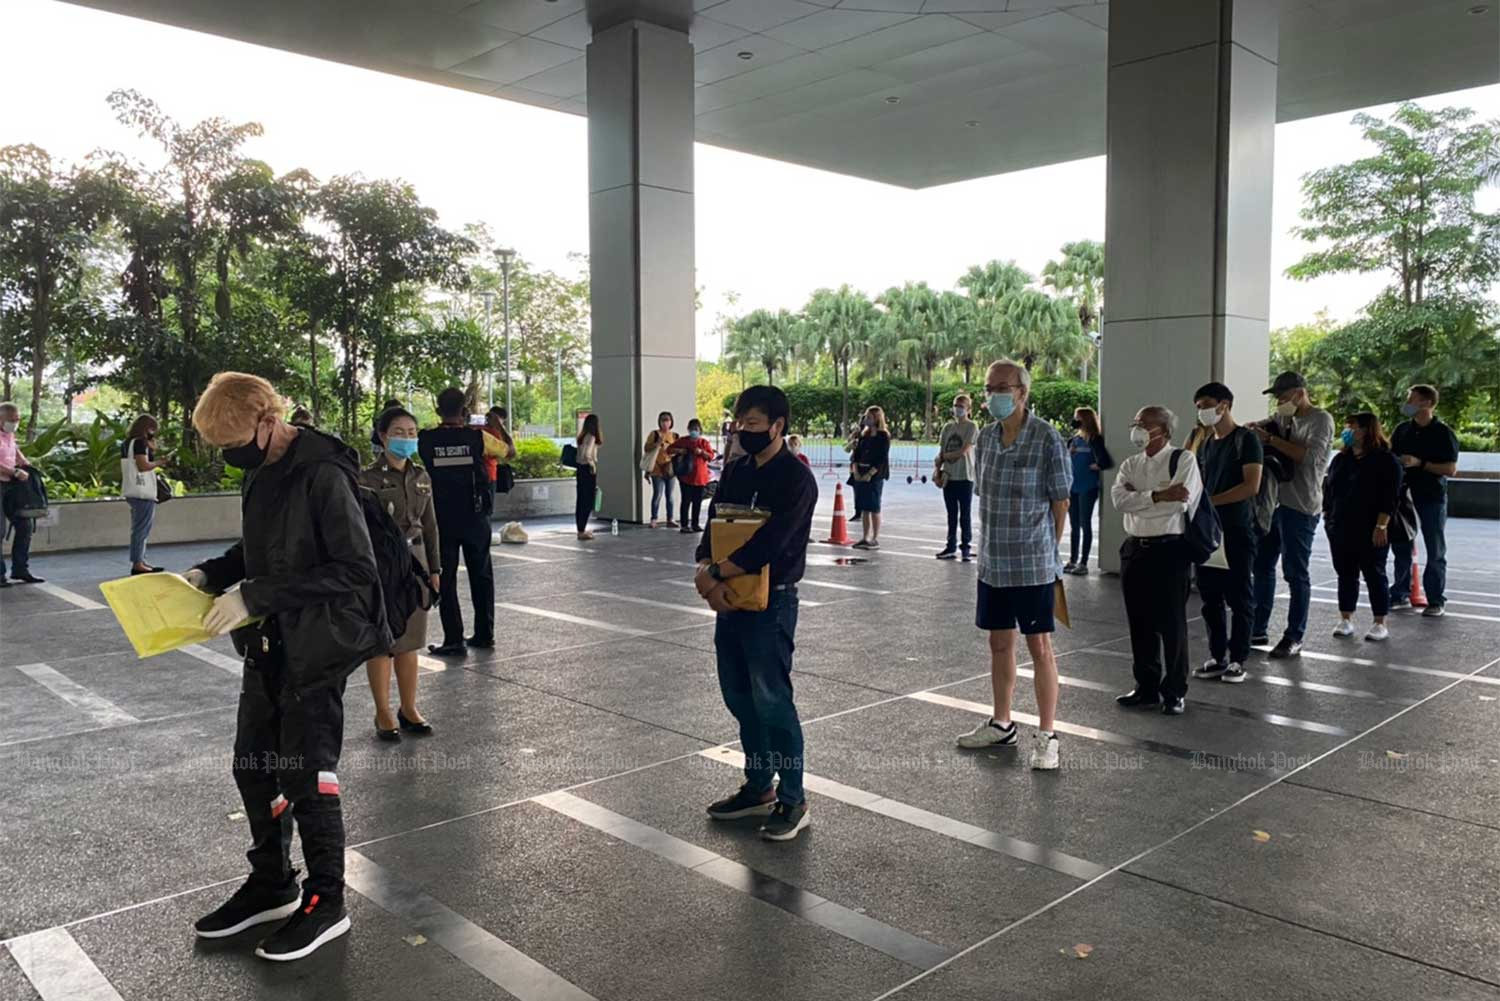 Foreigners wait at the Immigration Bureau's temporary office at the Central Investigation Bureau Building in Muang Thong Thani last week, seeking visa extensions after the Covid-19 pandemic disrupted their travel plans. (Immigration Bureau photo)